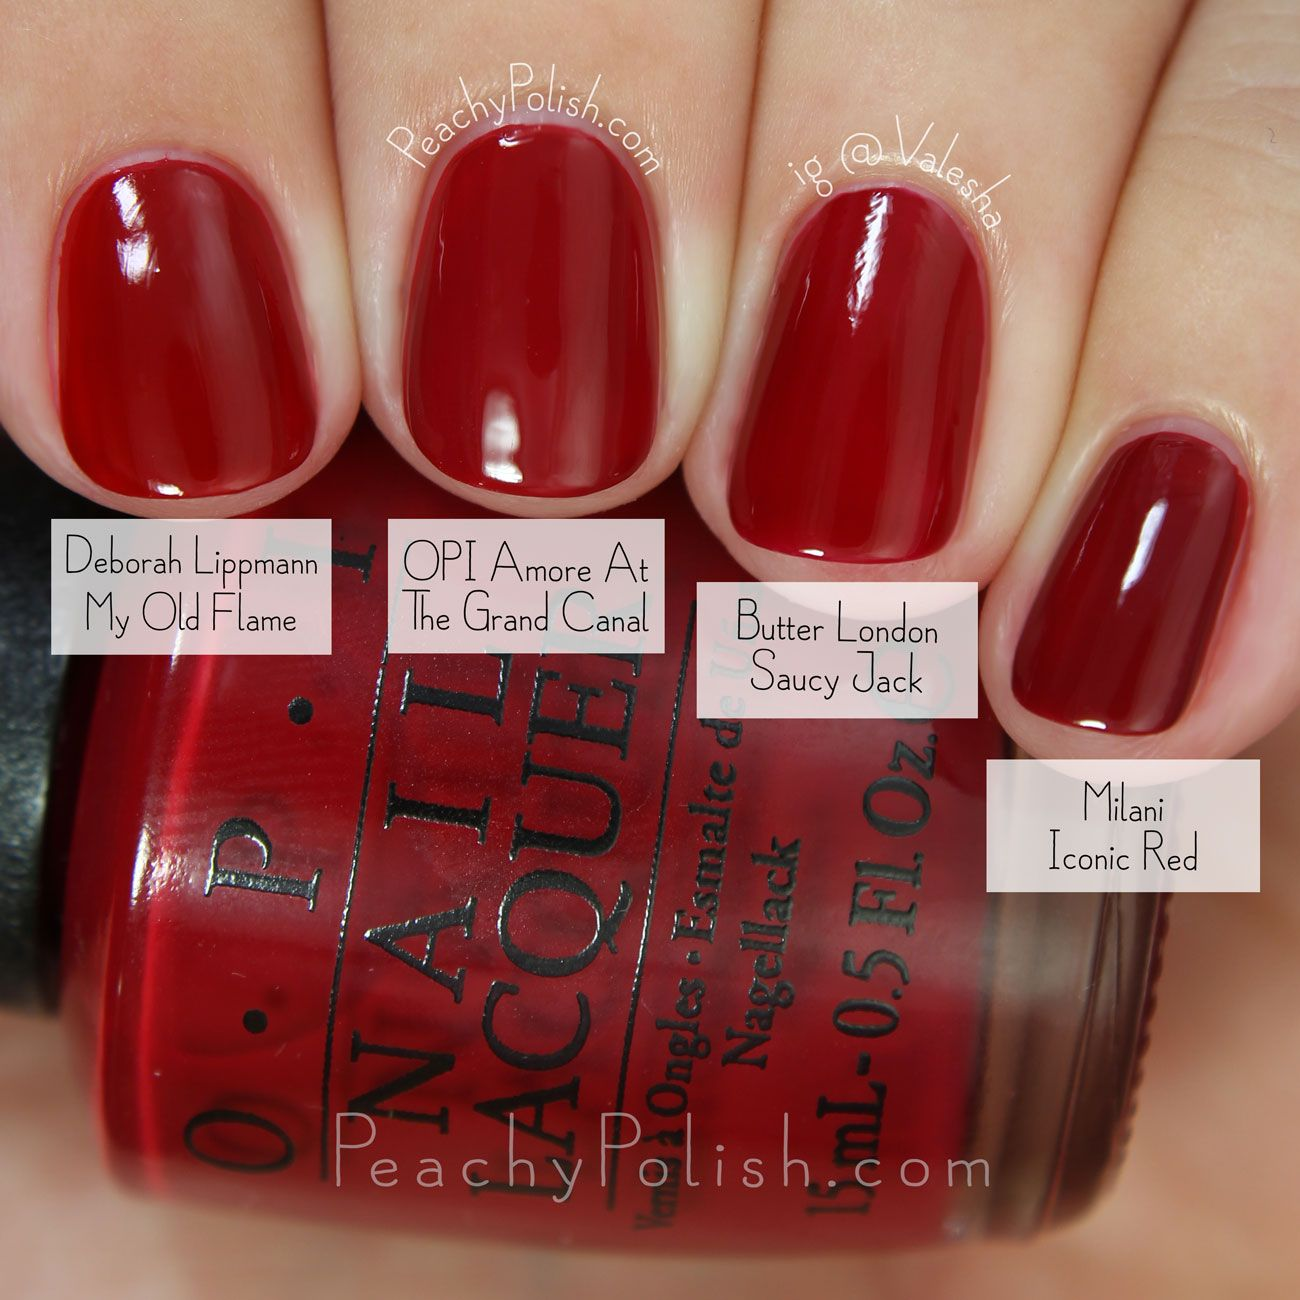 Opi Fall 2015 Venice Collection Comparisons Opi Red Nail Polish Nails Nail Polish